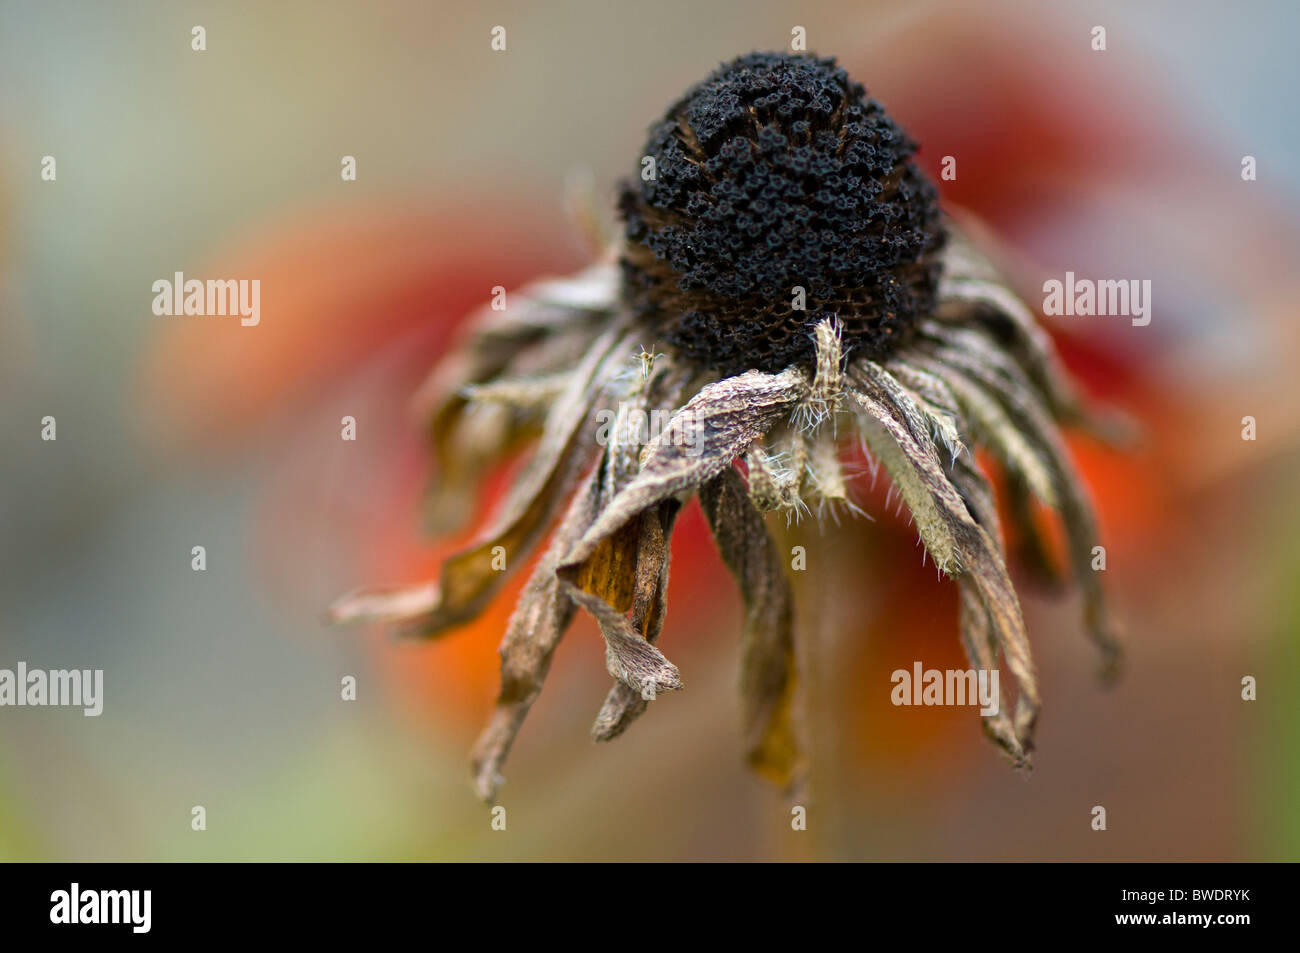 Rudbeckia hirta morts capitule. Photo Stock